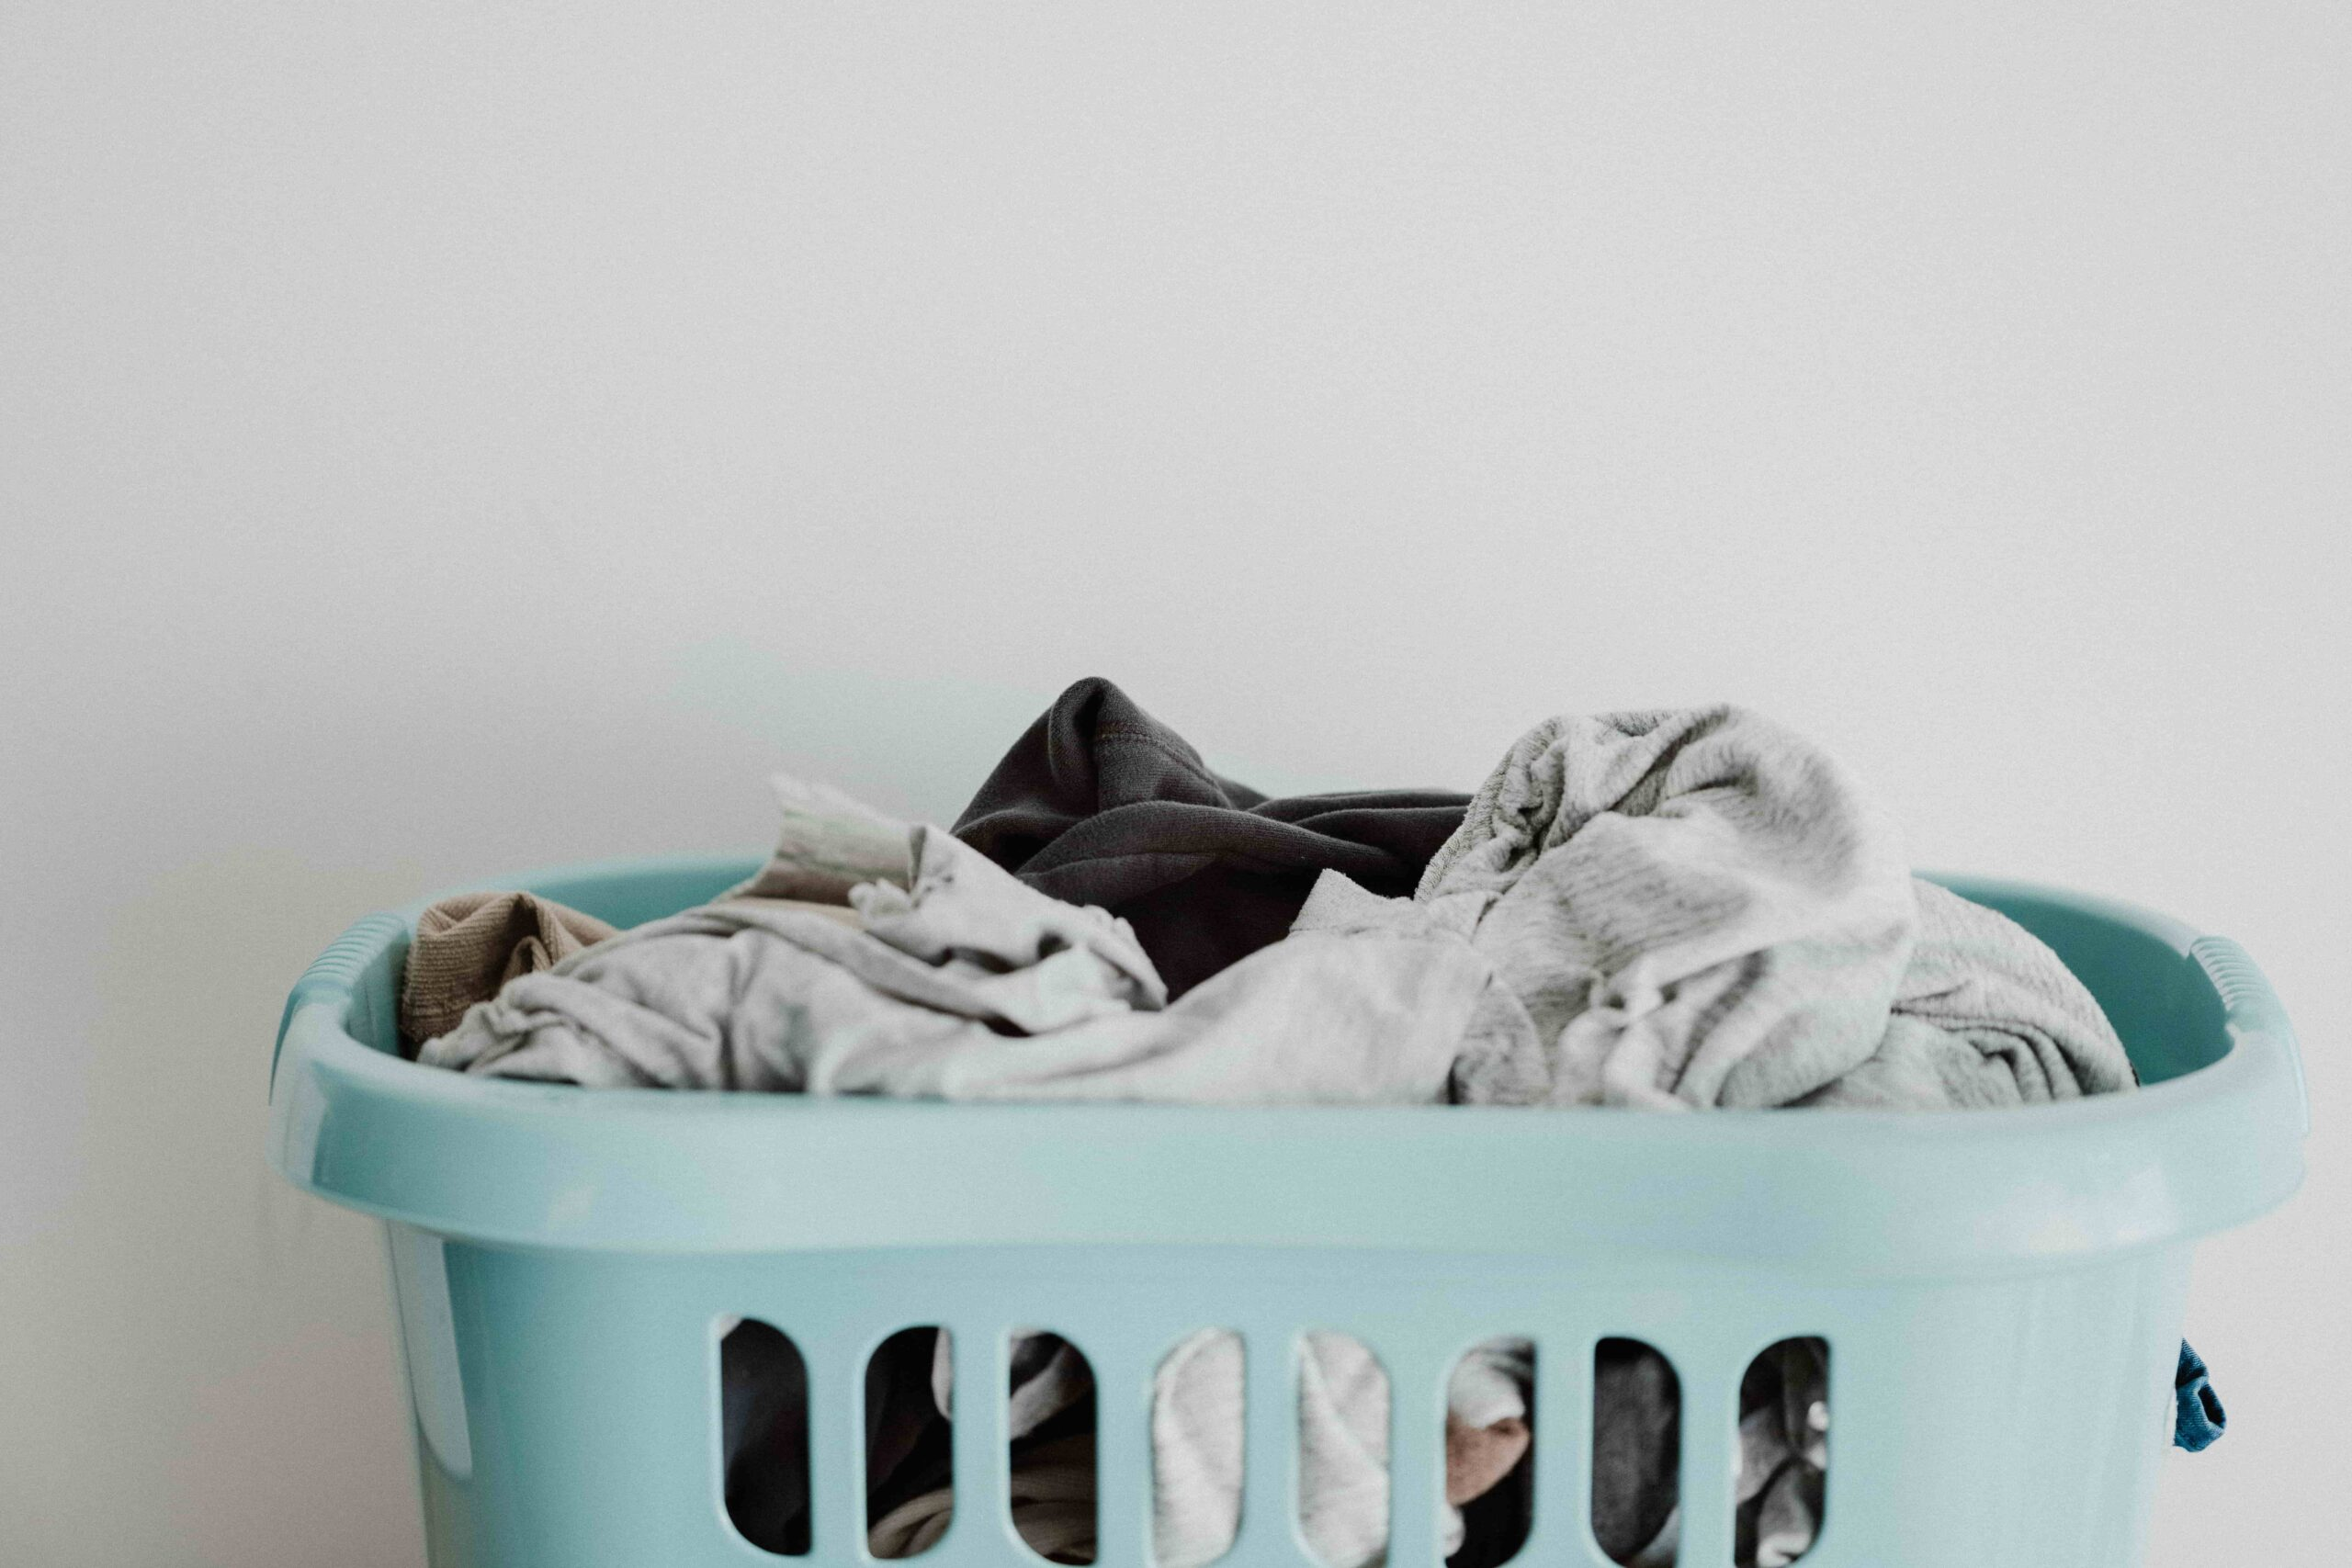 How To Know If It's Time To Toss Out Your Old Clothes?